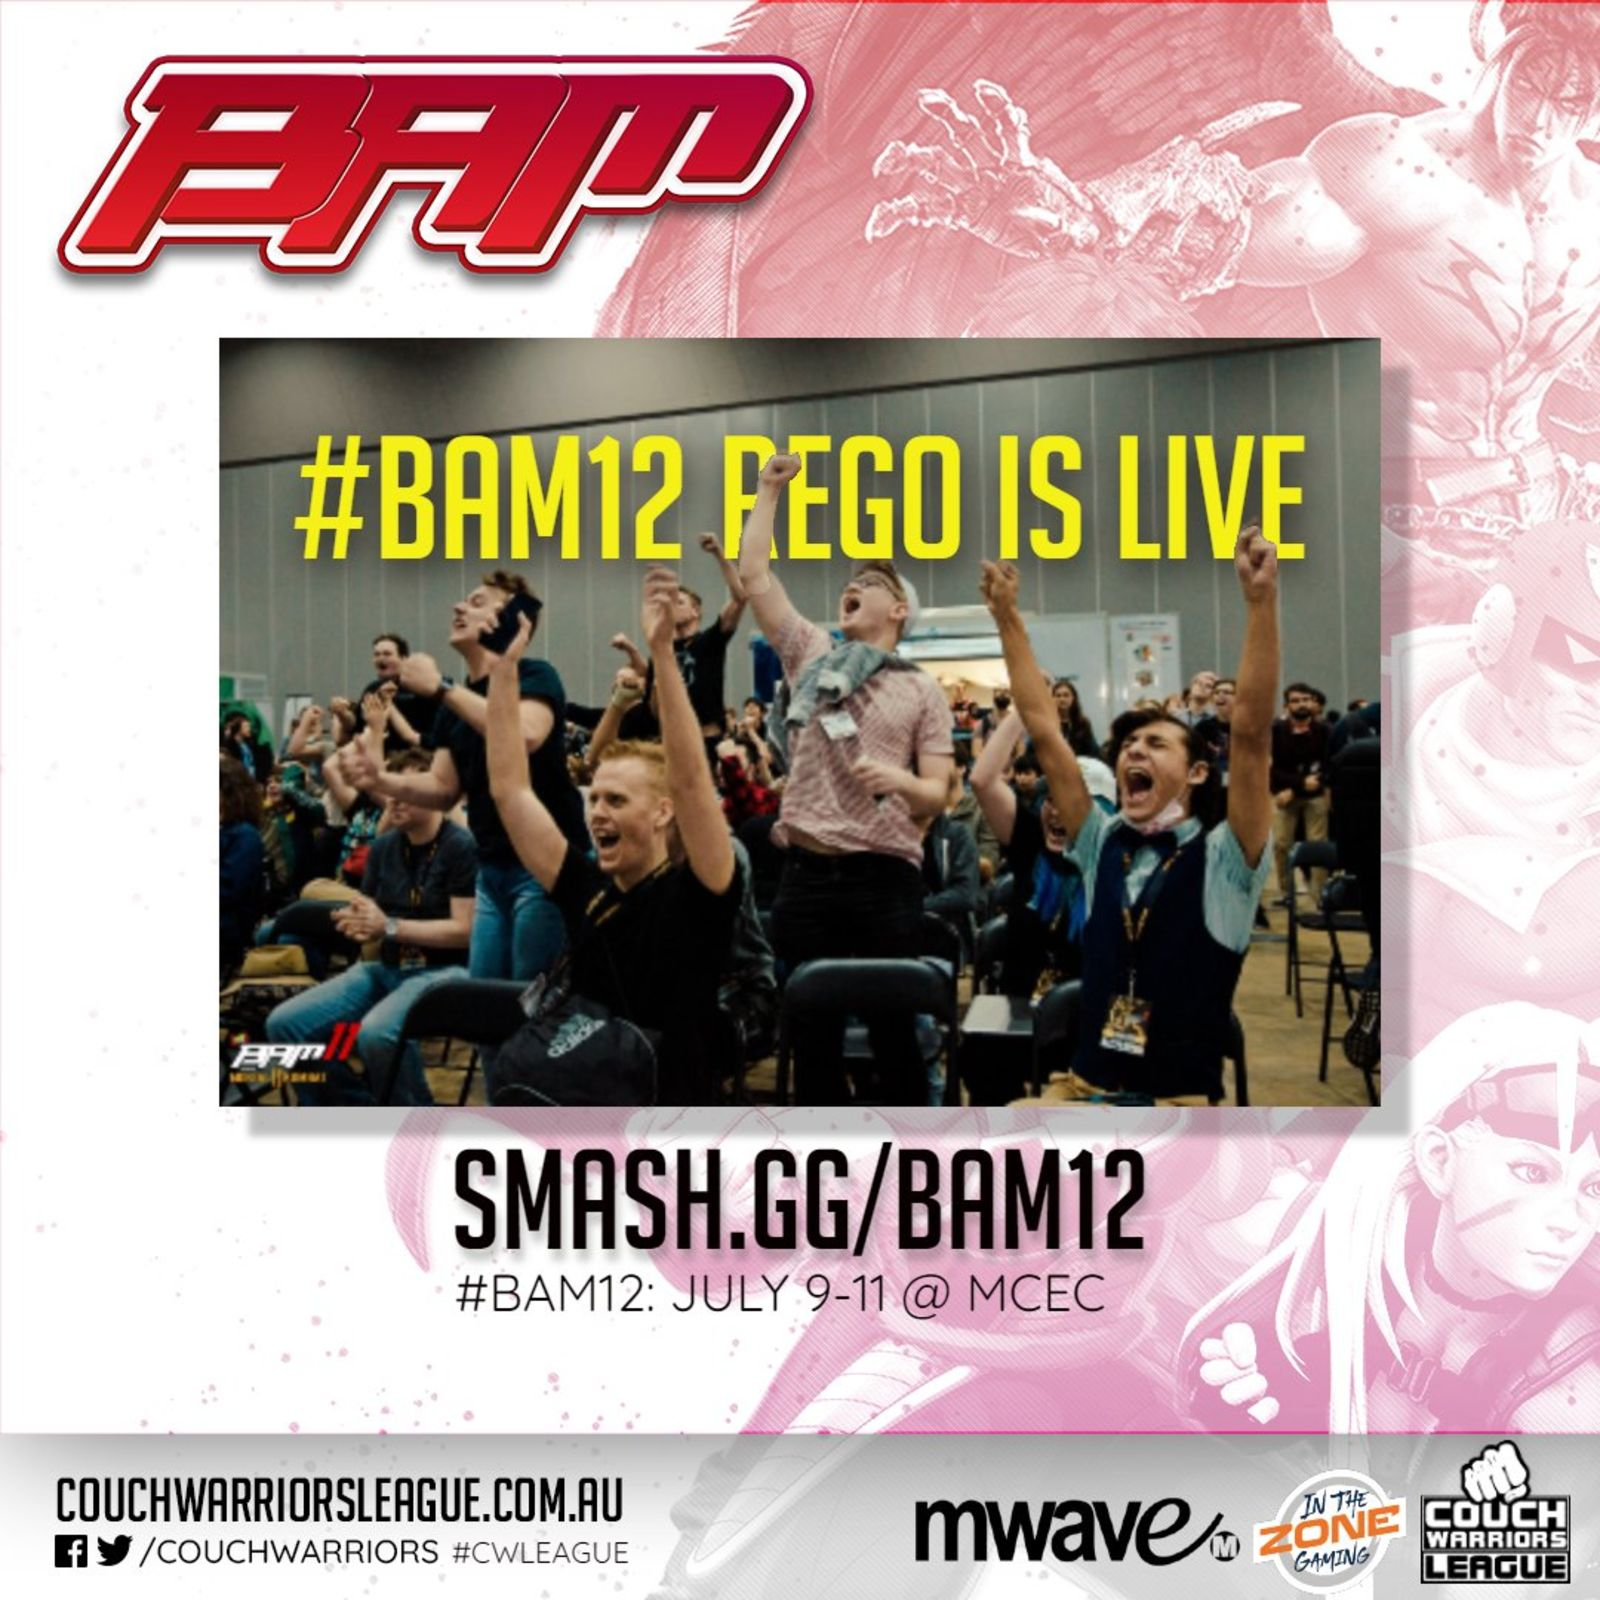 Registrations are open now at smash.gg/BAM12